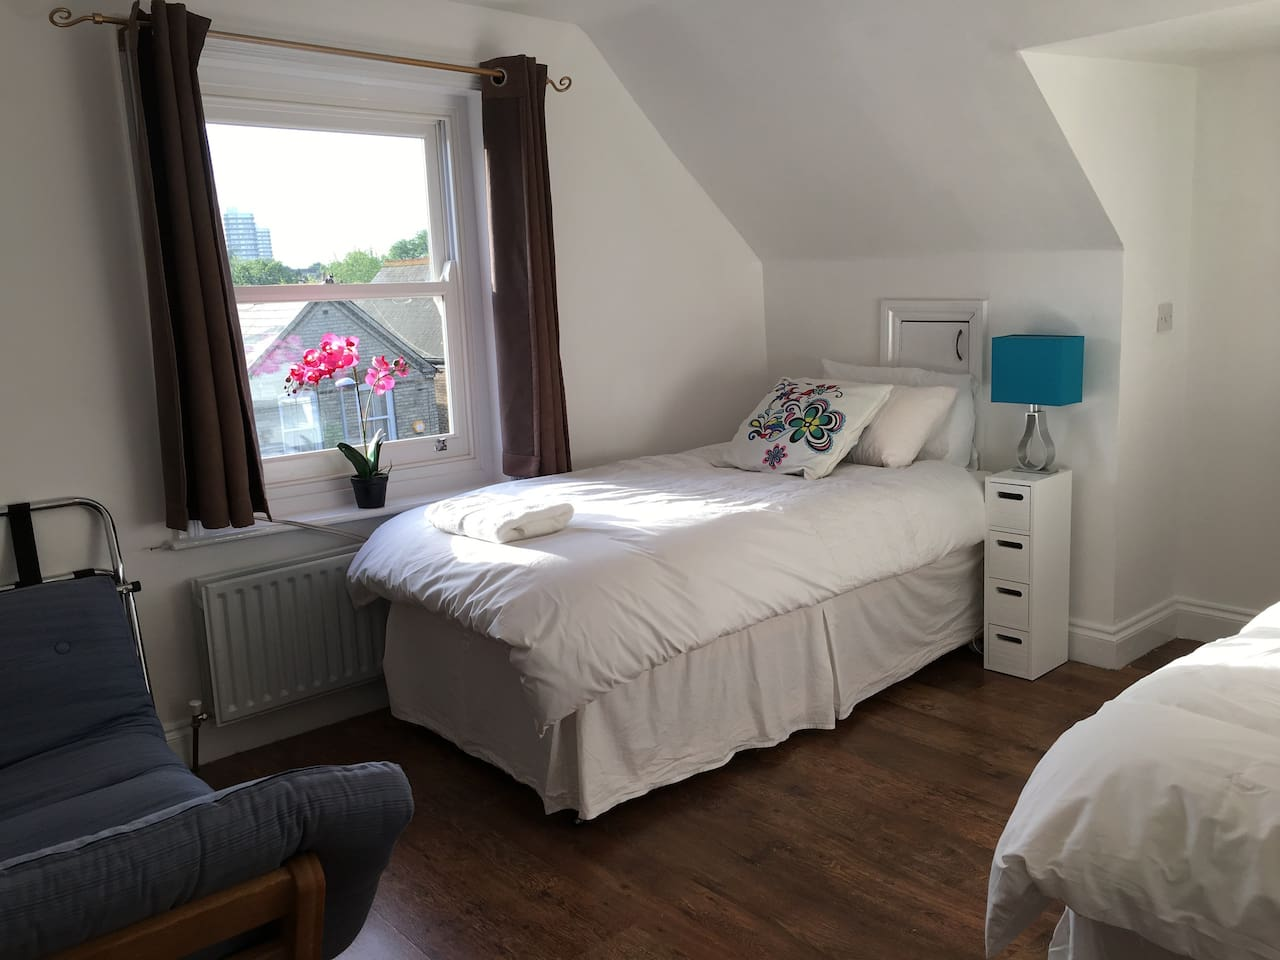 Bright and airy bedroom with 2 single beds and a sofa. The beds can be linked as a full king-size double at guest request